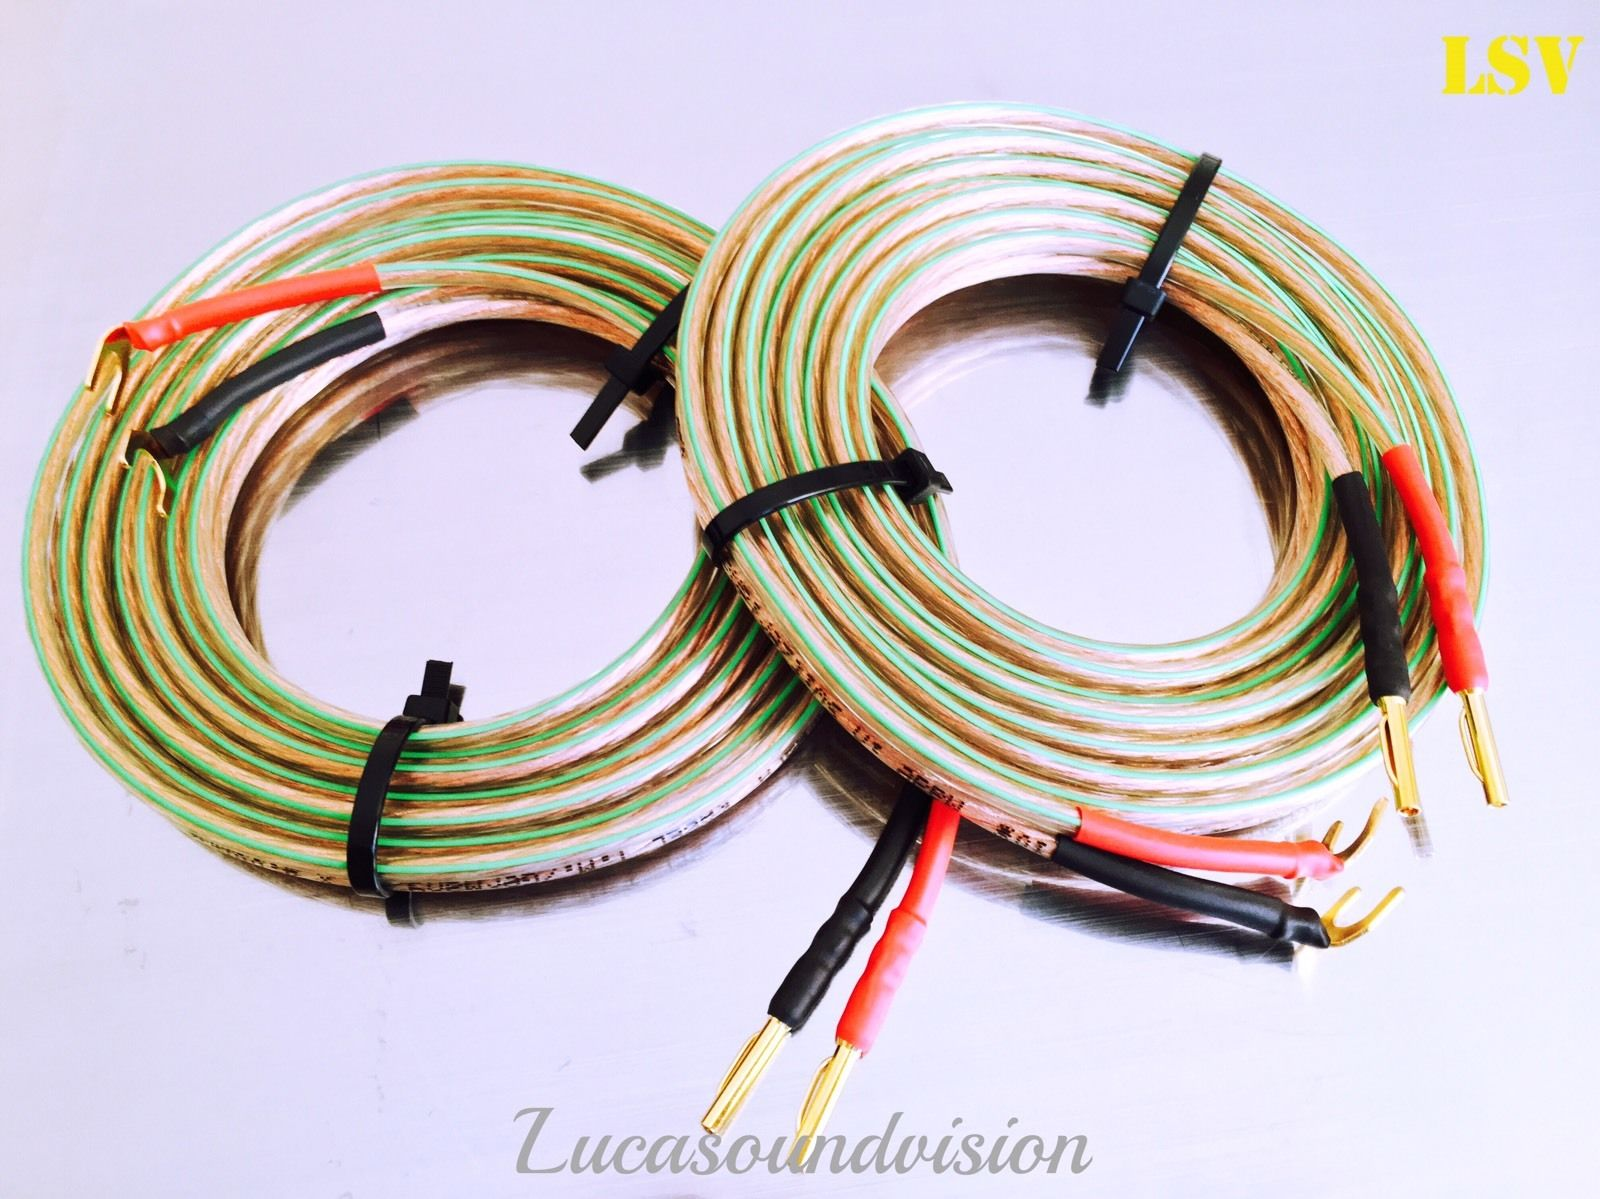 new oehlbach t 1063 2x4mm speaker cables 2x a pair terminated lucasoundvision hi fi. Black Bedroom Furniture Sets. Home Design Ideas